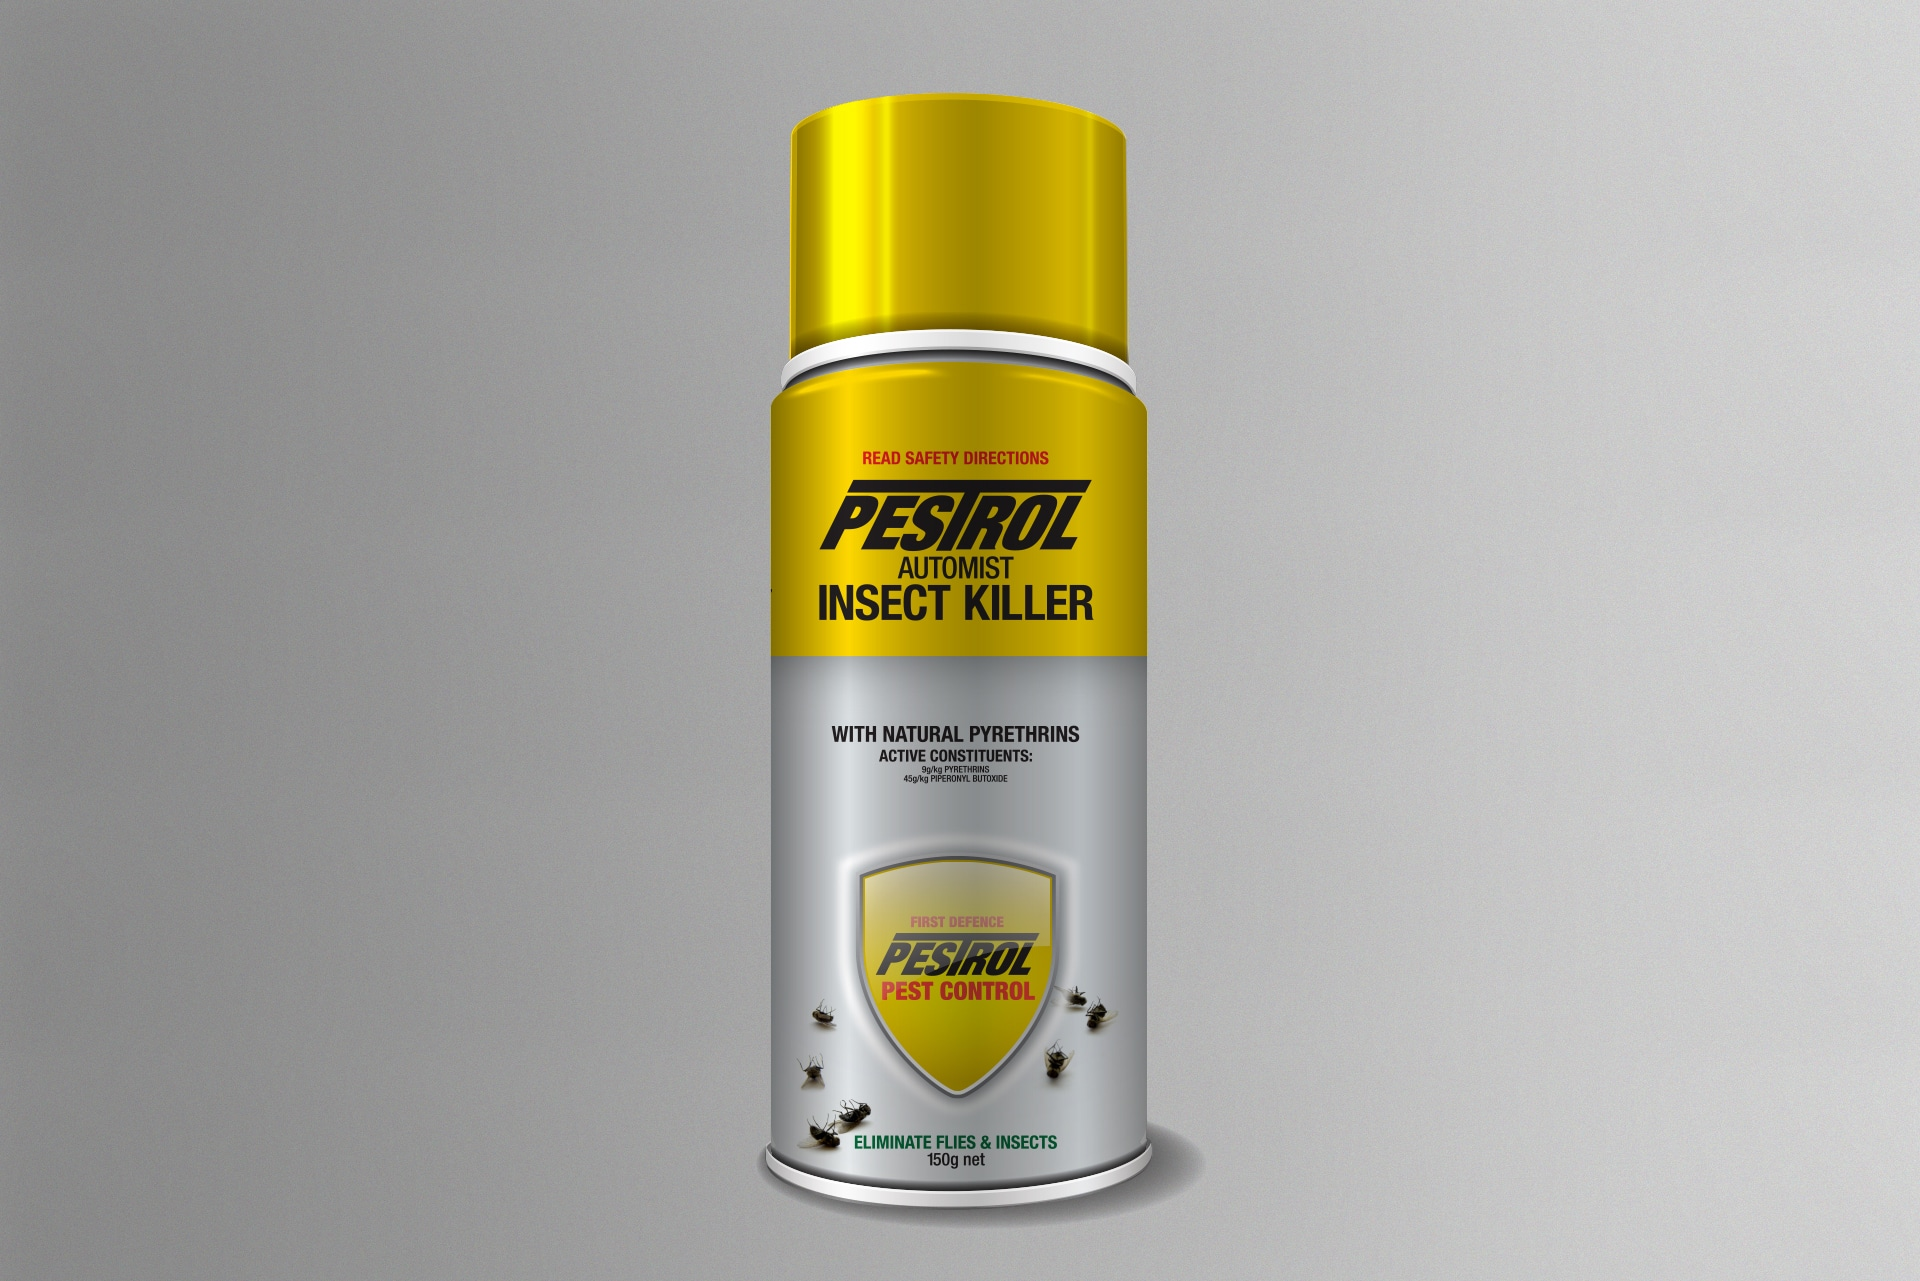 New Pestrol Insect Killer Can Before